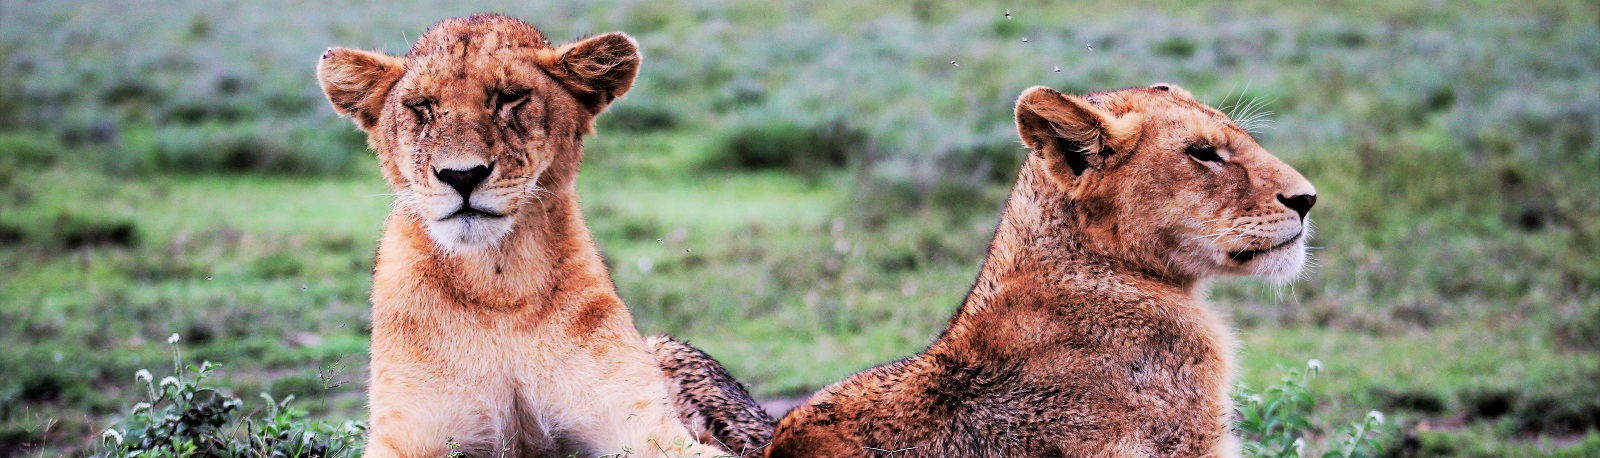 Celebrate The Upcoming Release Of The Lion King With Our Amazing Animal Encounters Sale